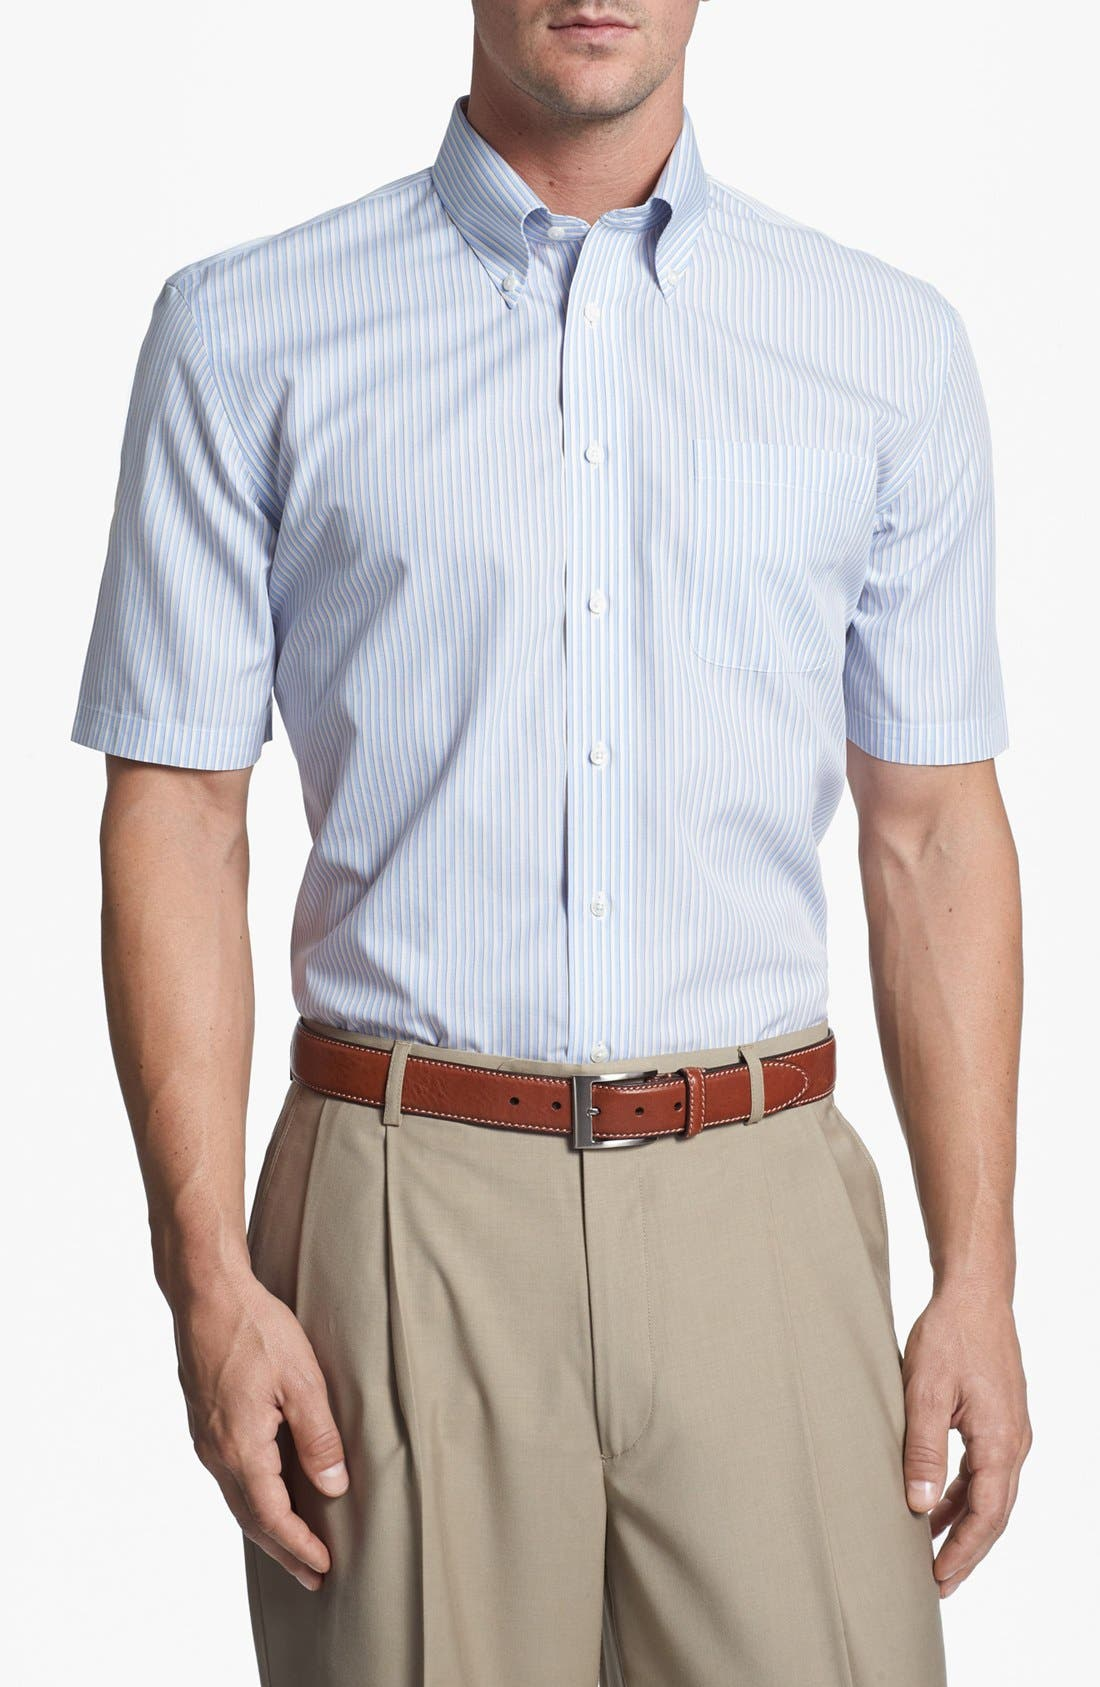 Alternate Image 3  - Nordstrom Smartcare™ Wrinkle Free Traditional Fit Short Sleeve Dress Shirt (Online Only)